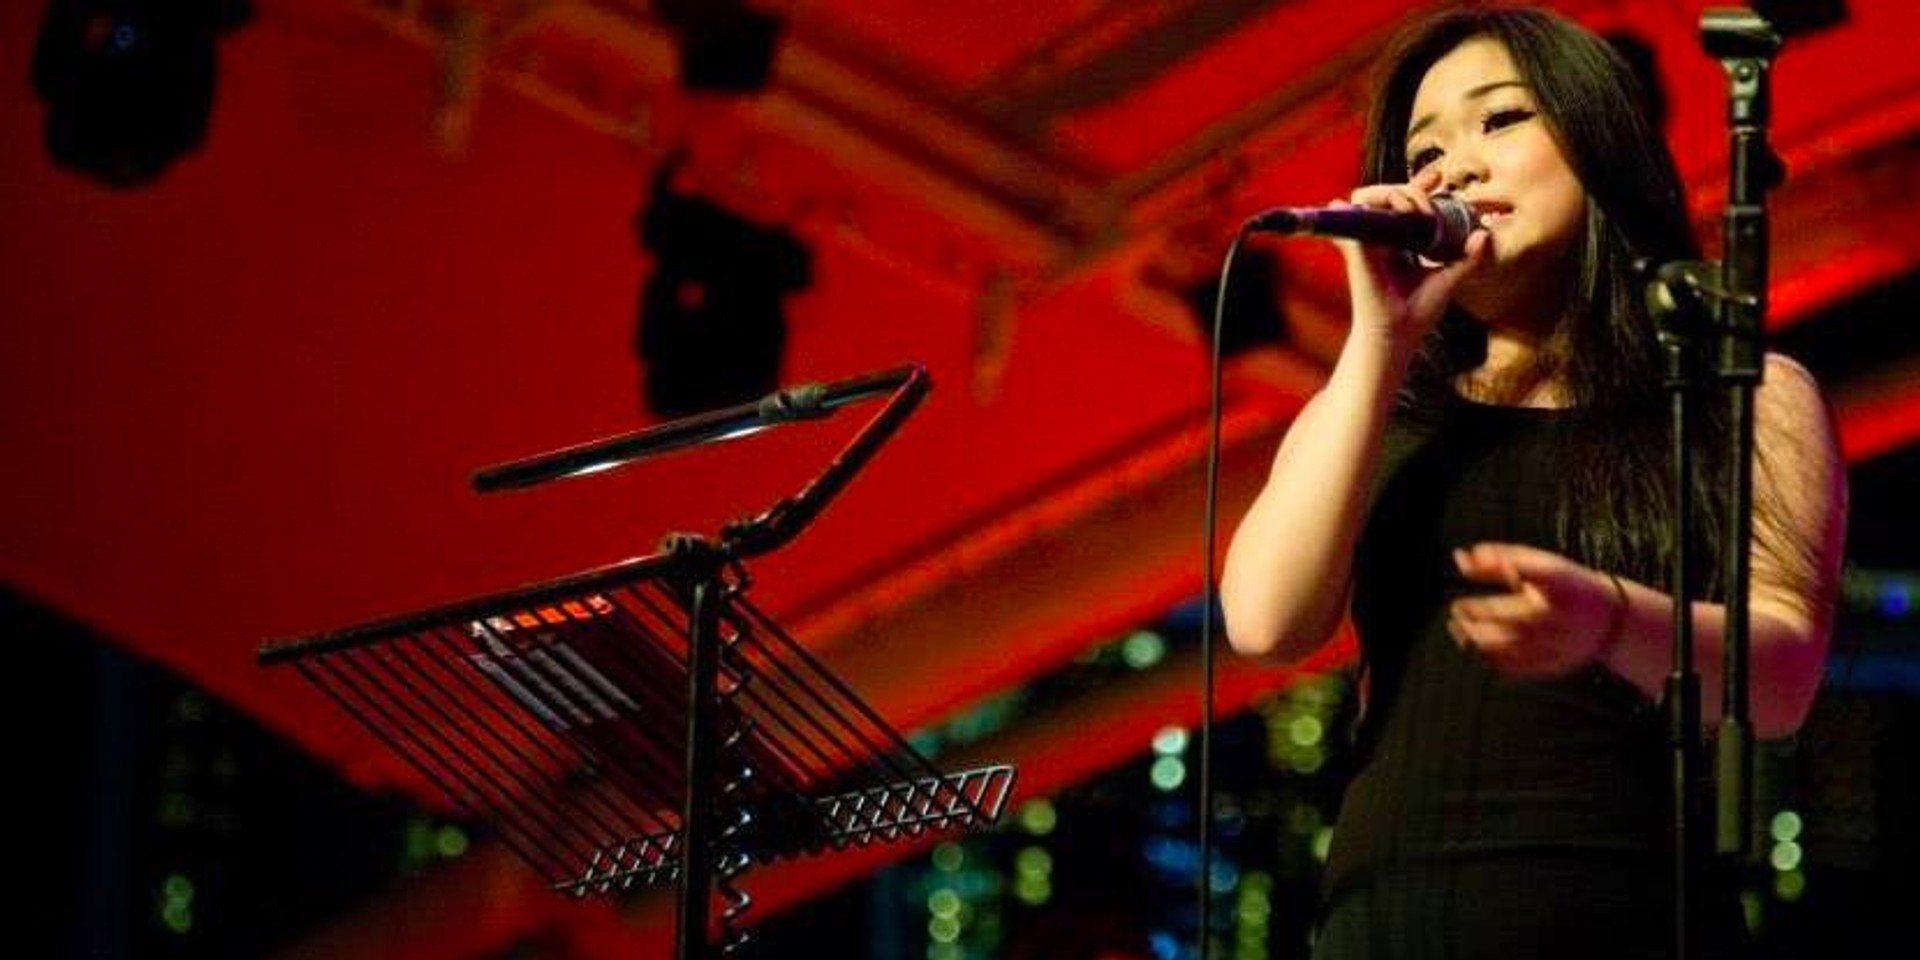 Fifth Singaporean chosen for Sing! China before being dropped